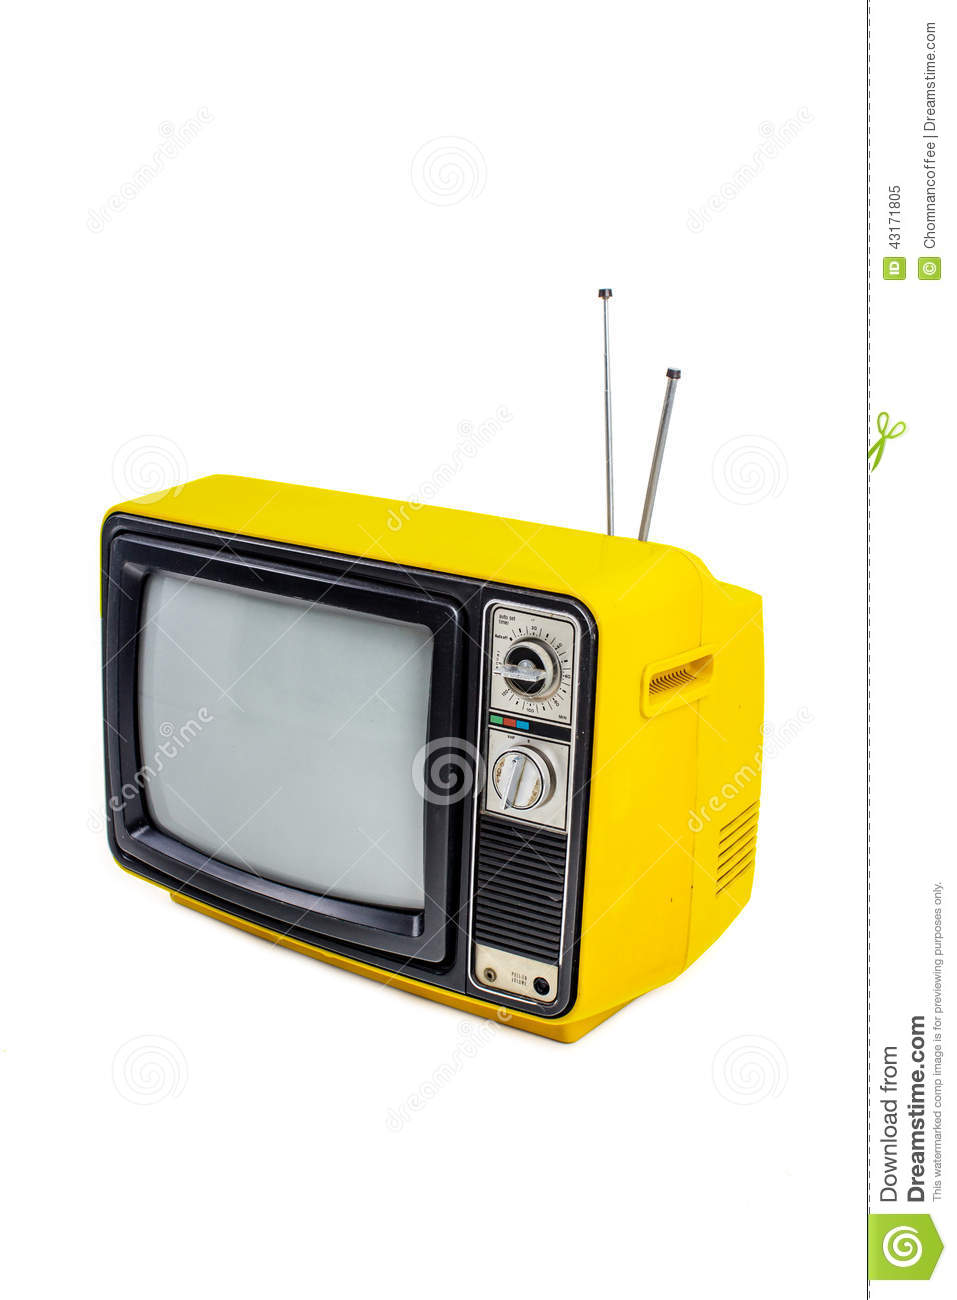 Last Tweets about Television jaune